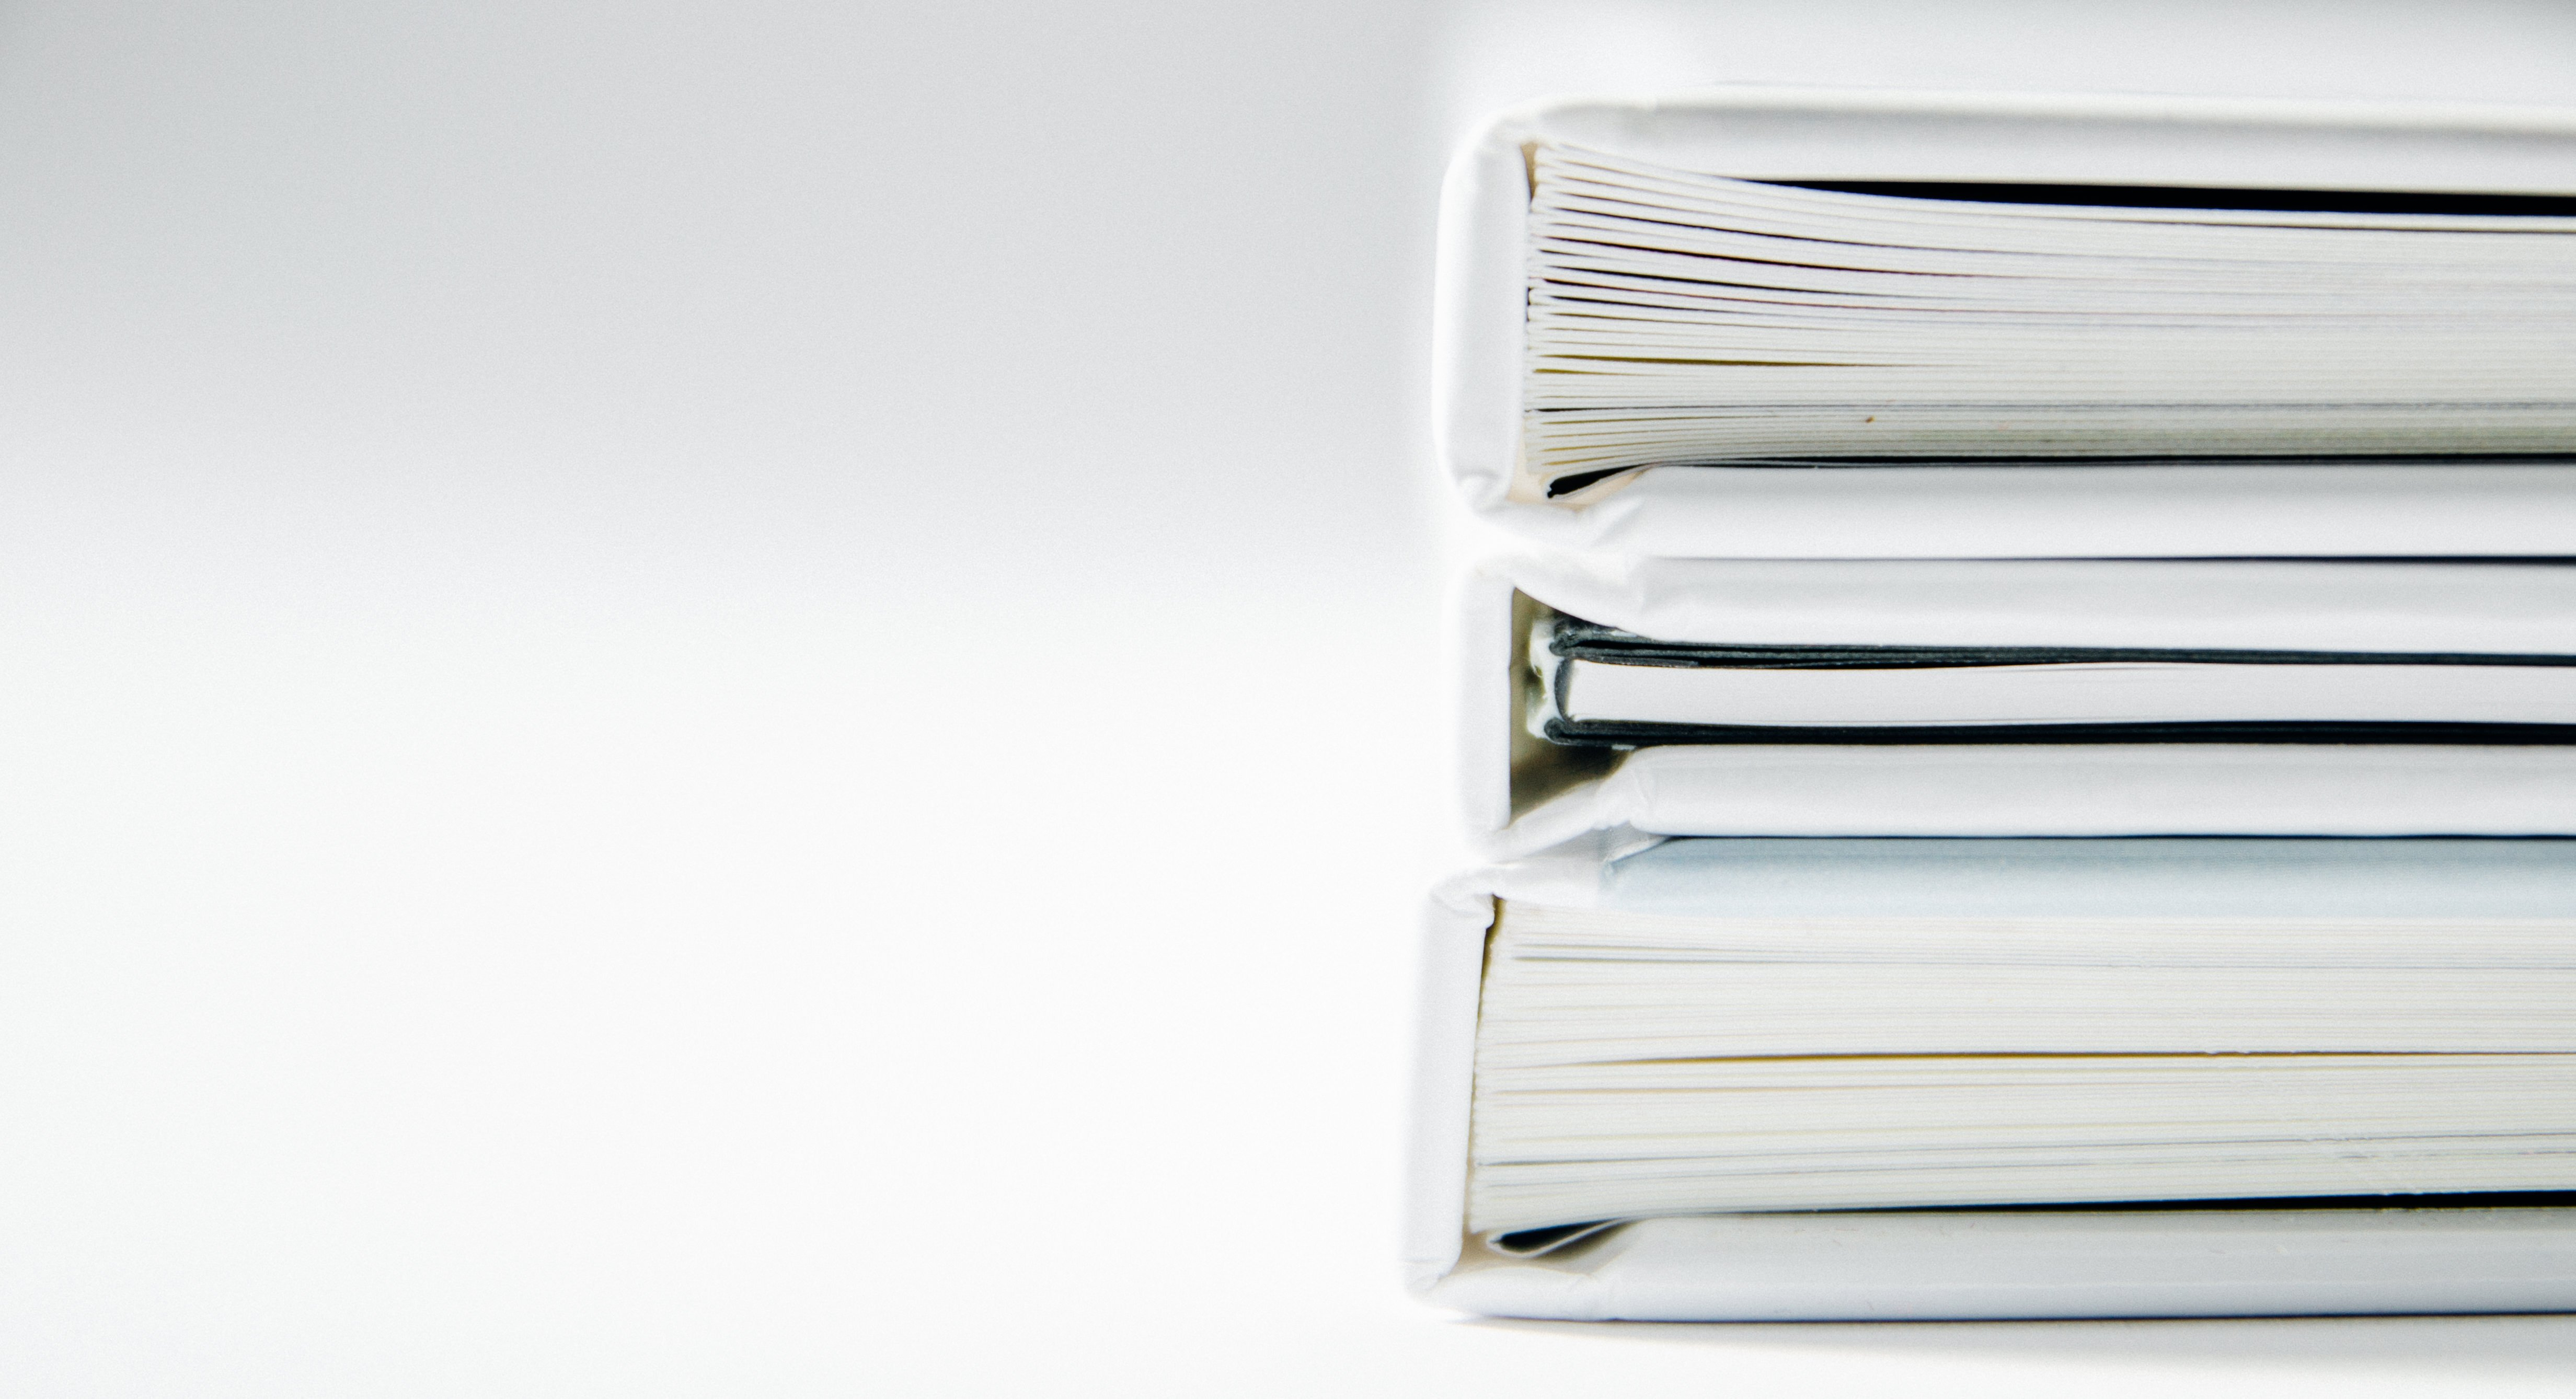 do invoices have to be stored in paper format